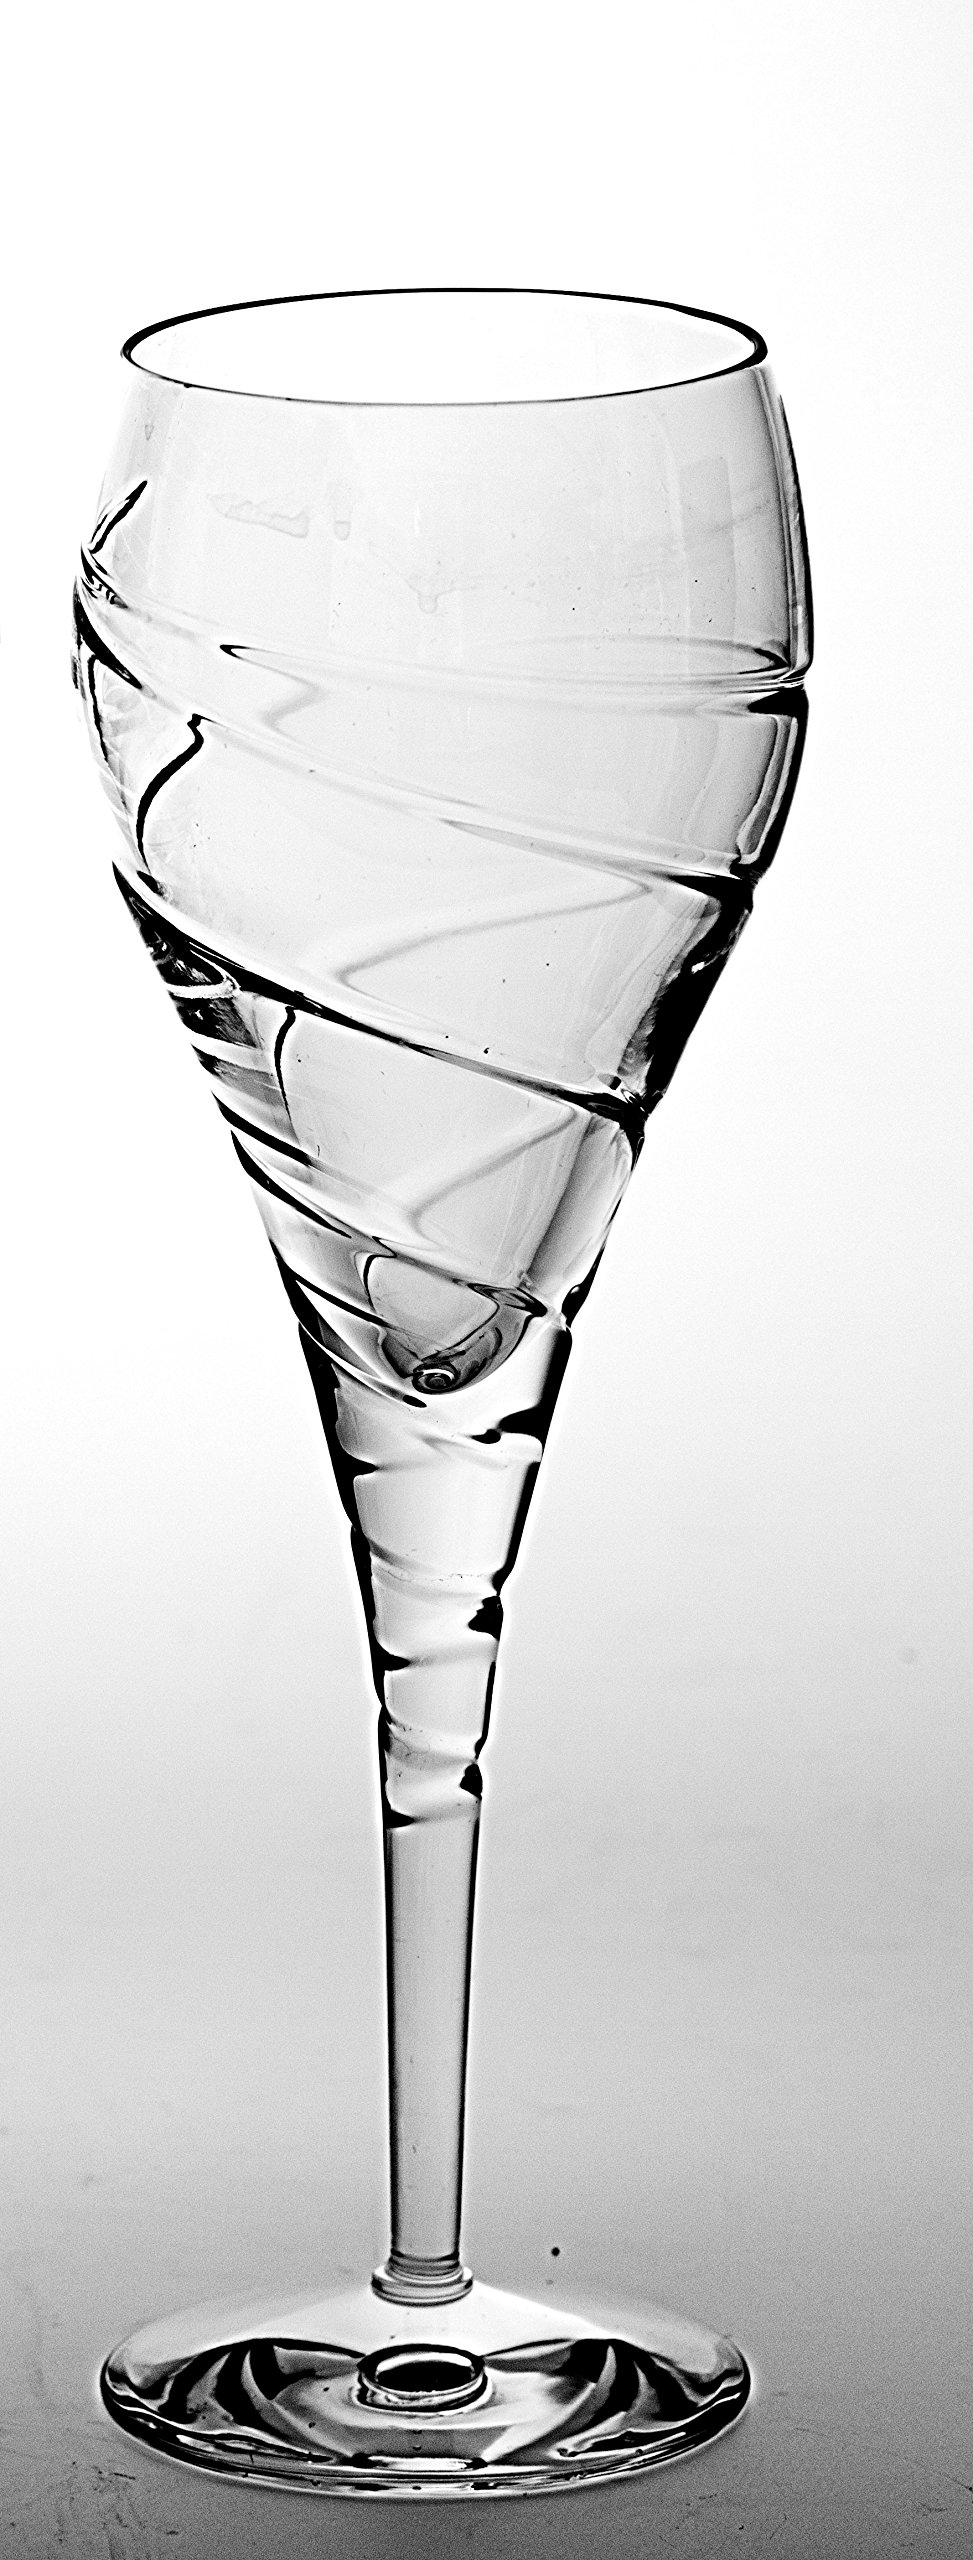 Barski - European Quality -Cut Crystal Glasses- Wine Goblet - Glass is 8.75 oz. - Made in Europe - Set of 6